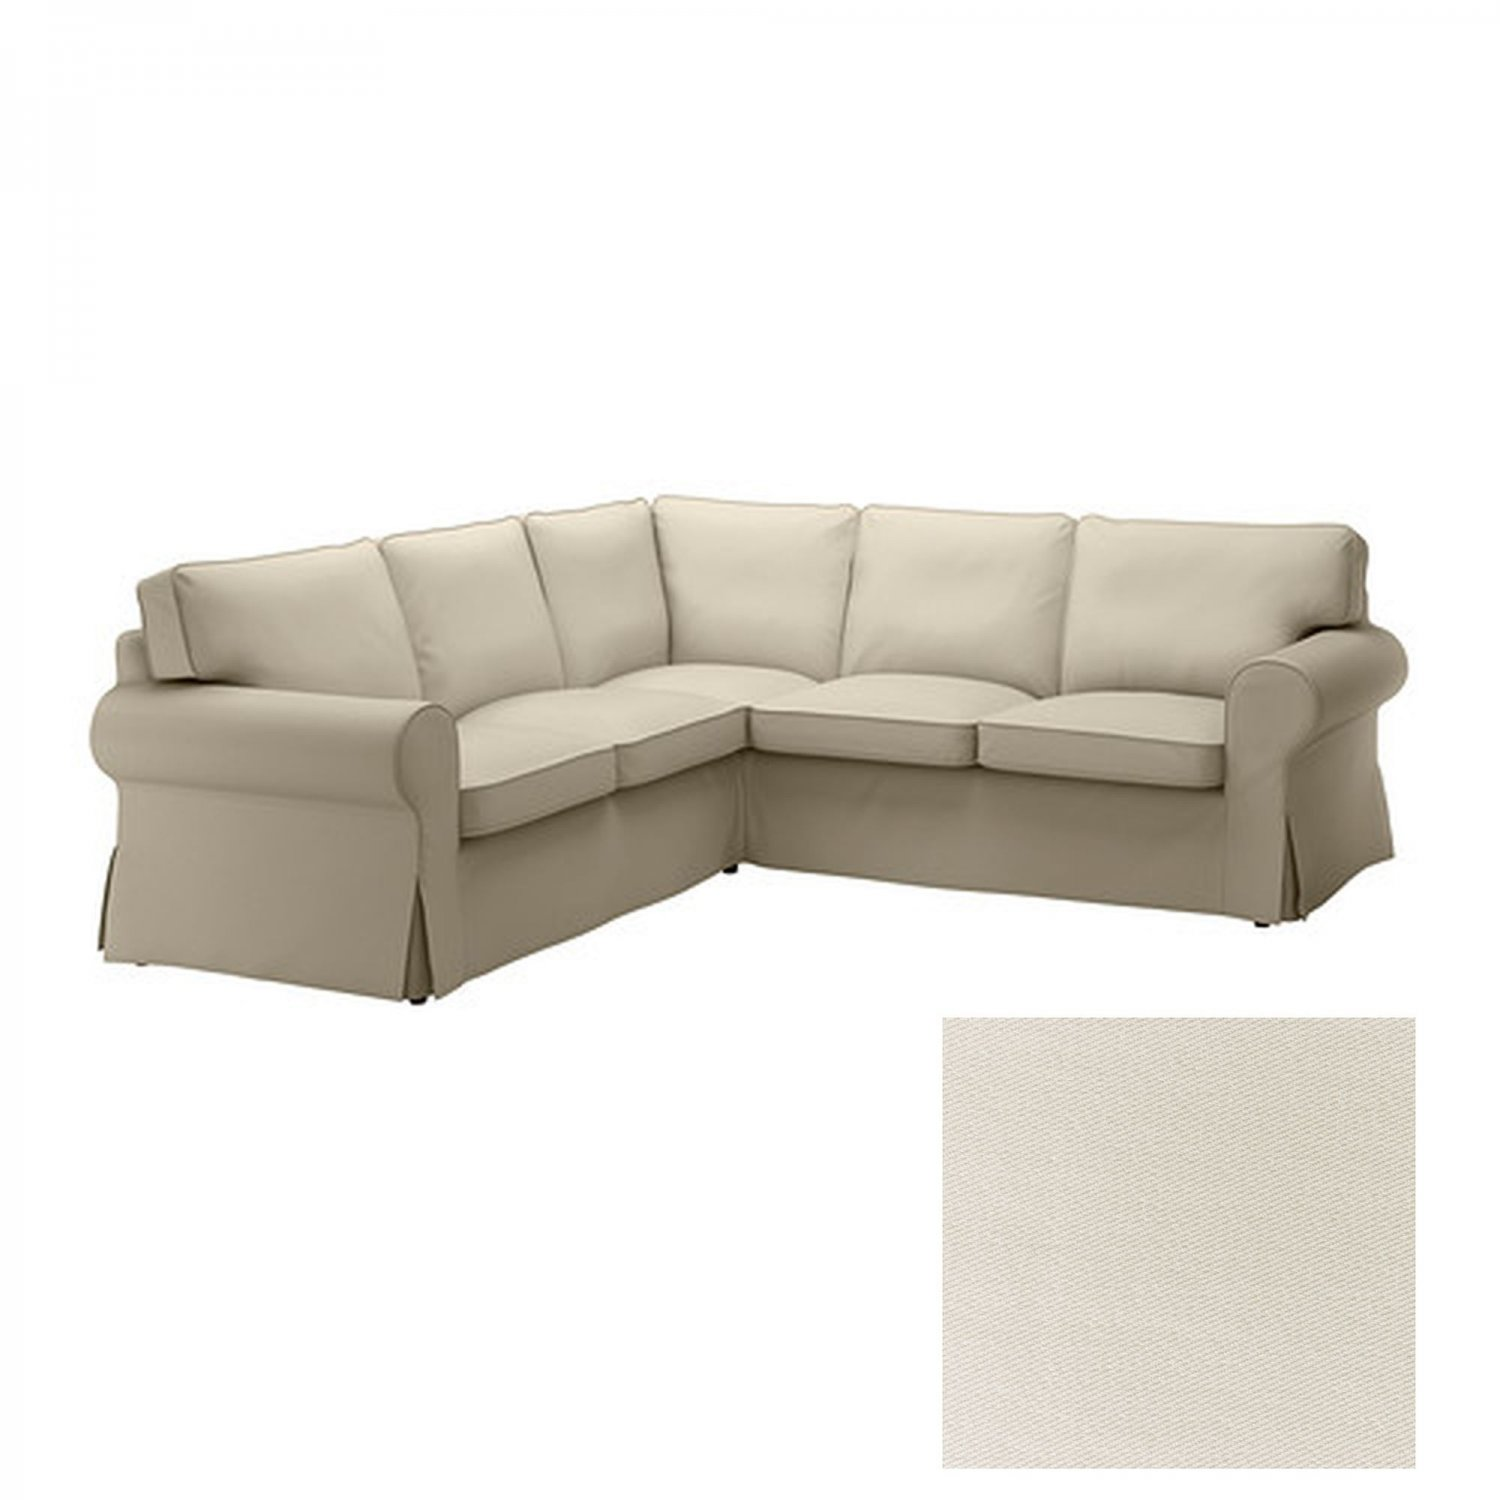 sofa slipcover ikea chaisson contemporary bonded leather sectional with chaise ektorp 2 432 corner cover tygelsjo light